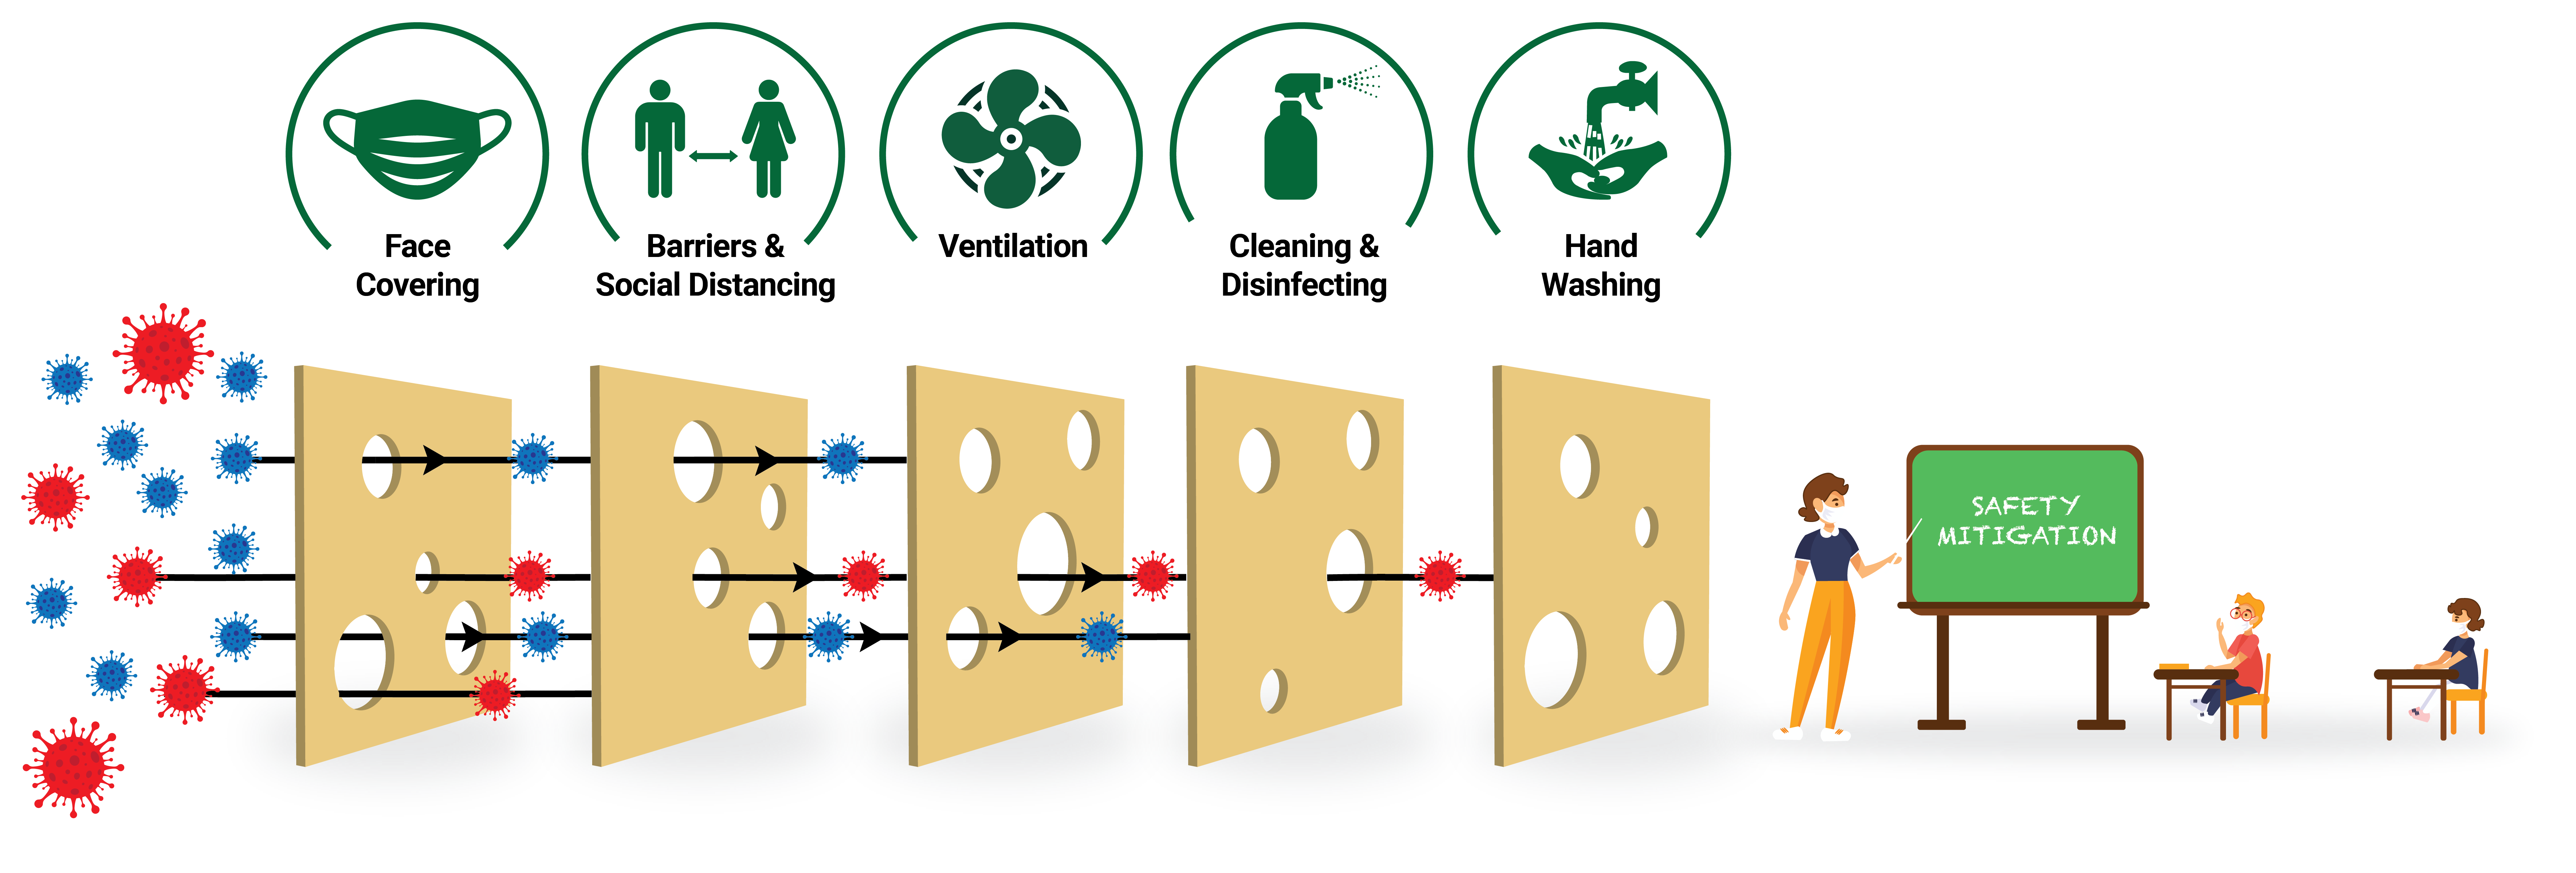 Swiss cheese diagram showing multiple levels of protection